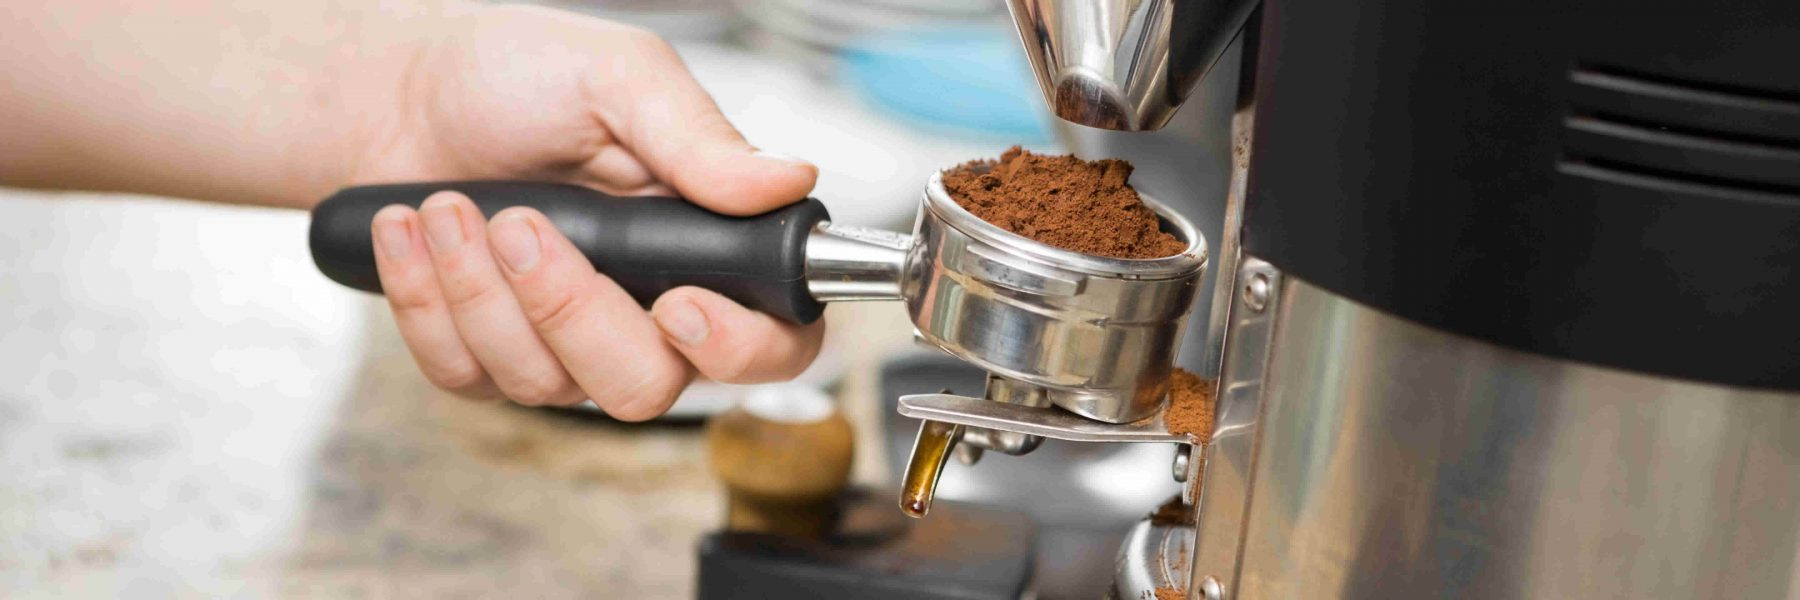 Coffee bean grinder machines